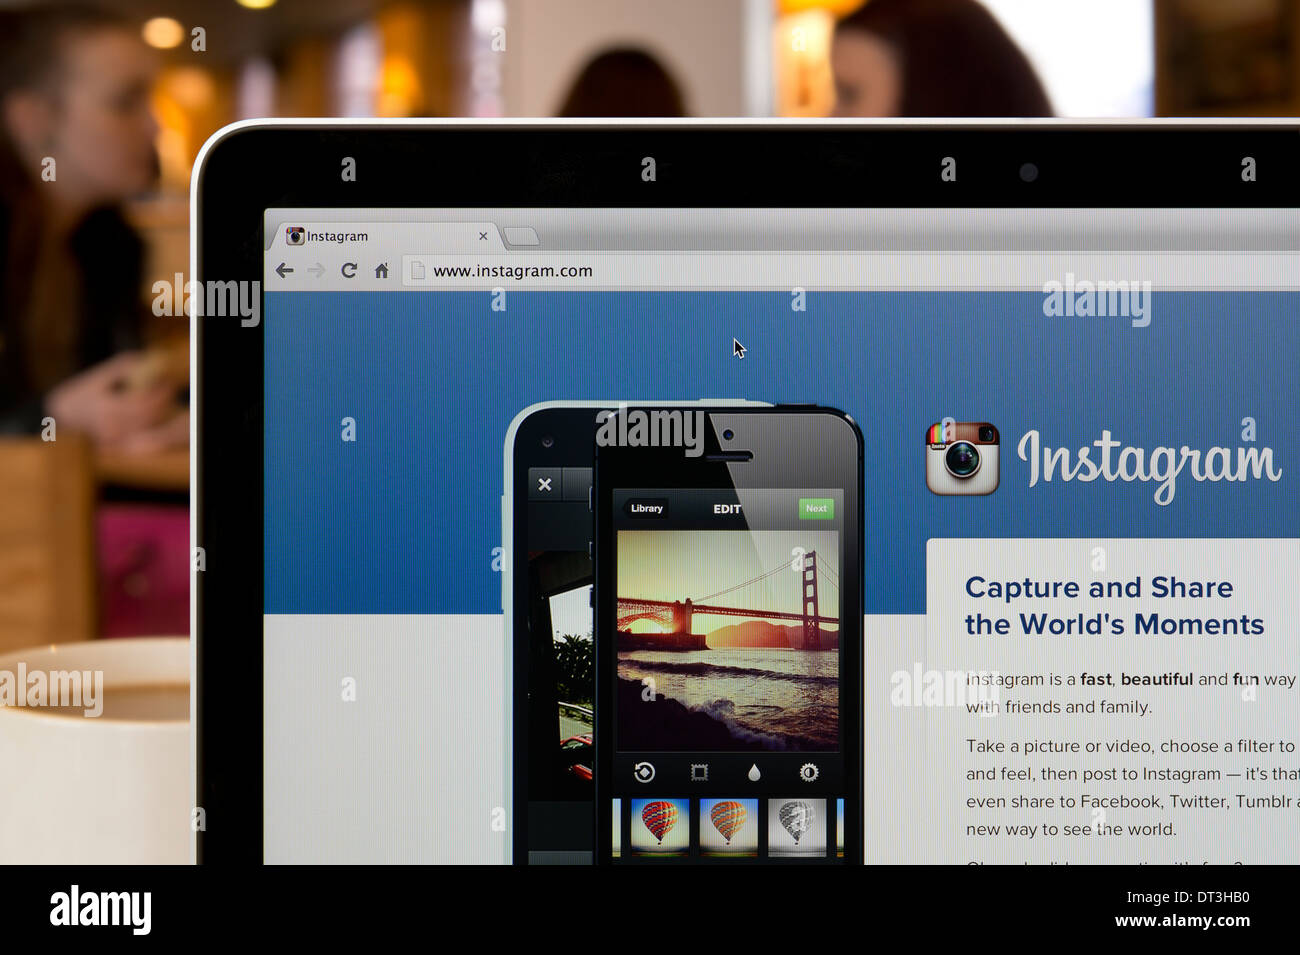 The Instagram website shot in a coffee shop environment (Editorial use only: print, TV, e-book and editorial website). - Stock Image